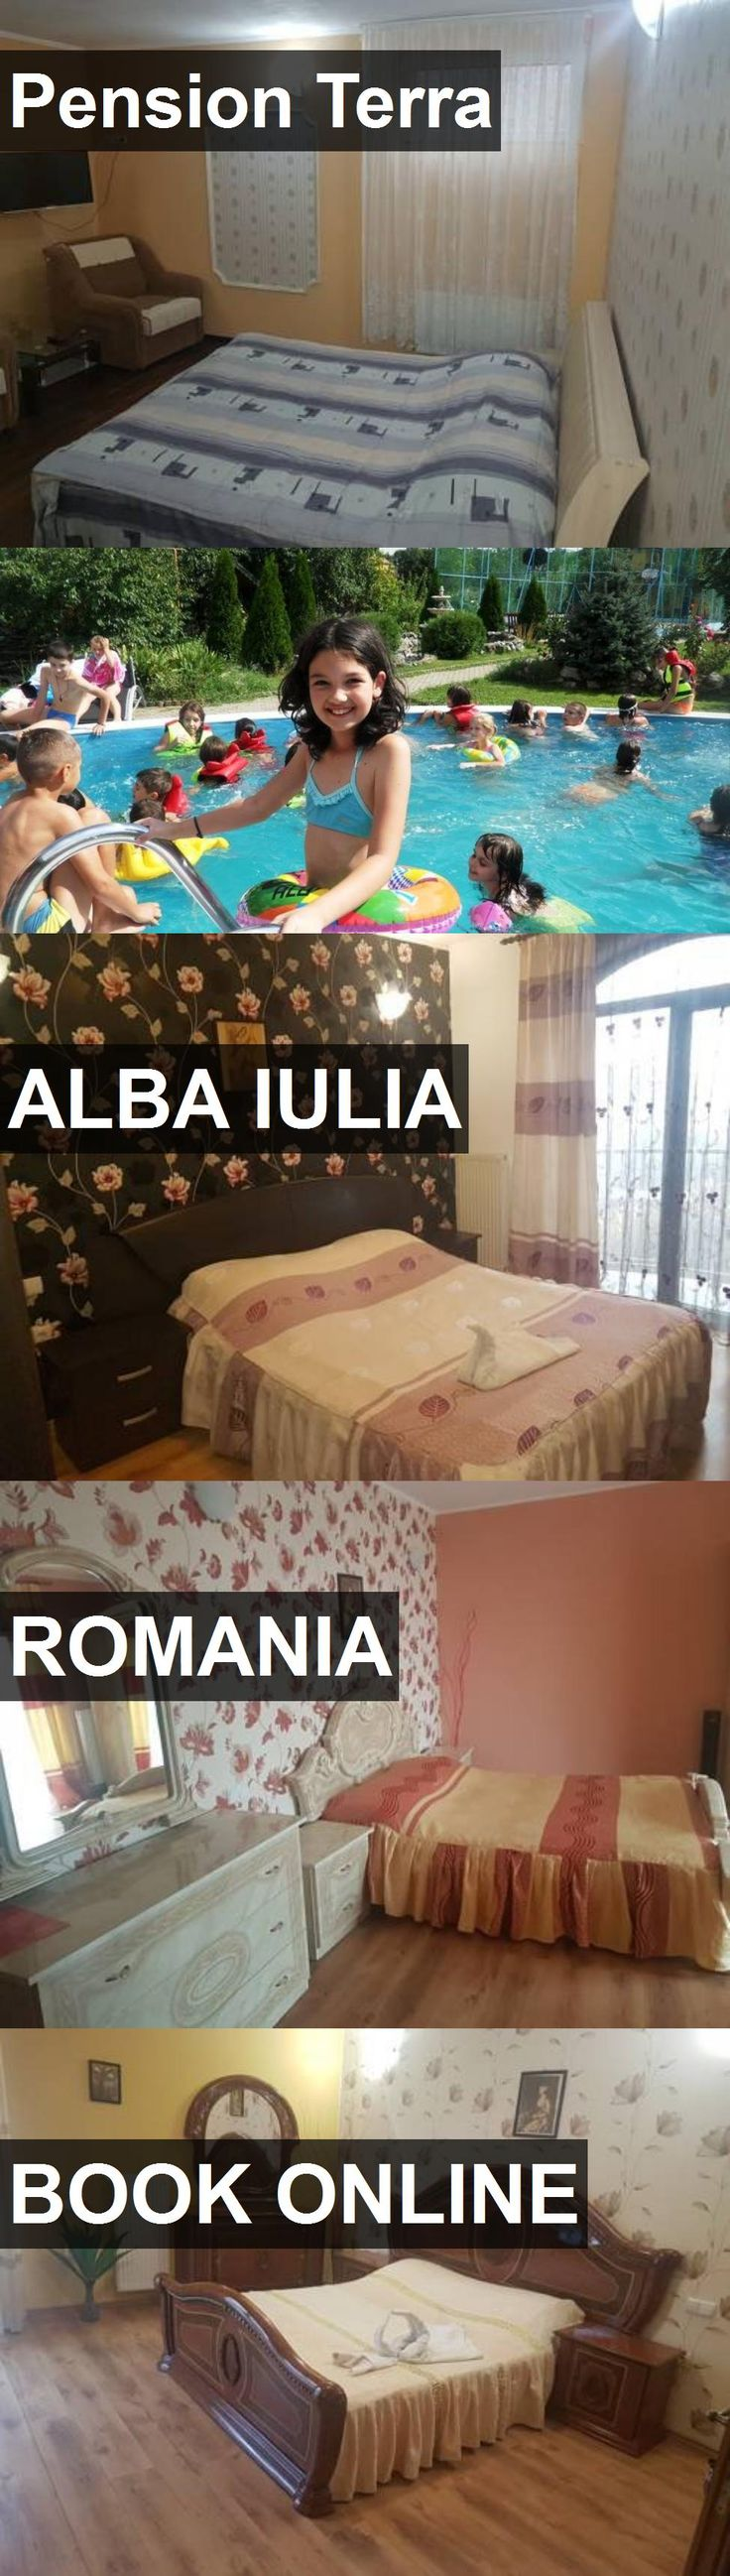 Hotel Pension Terra in Alba Iulia, Romania. For more information, photos, reviews and best prices please follow the link. #Romania #AlbaIulia #travel #vacation #hotel